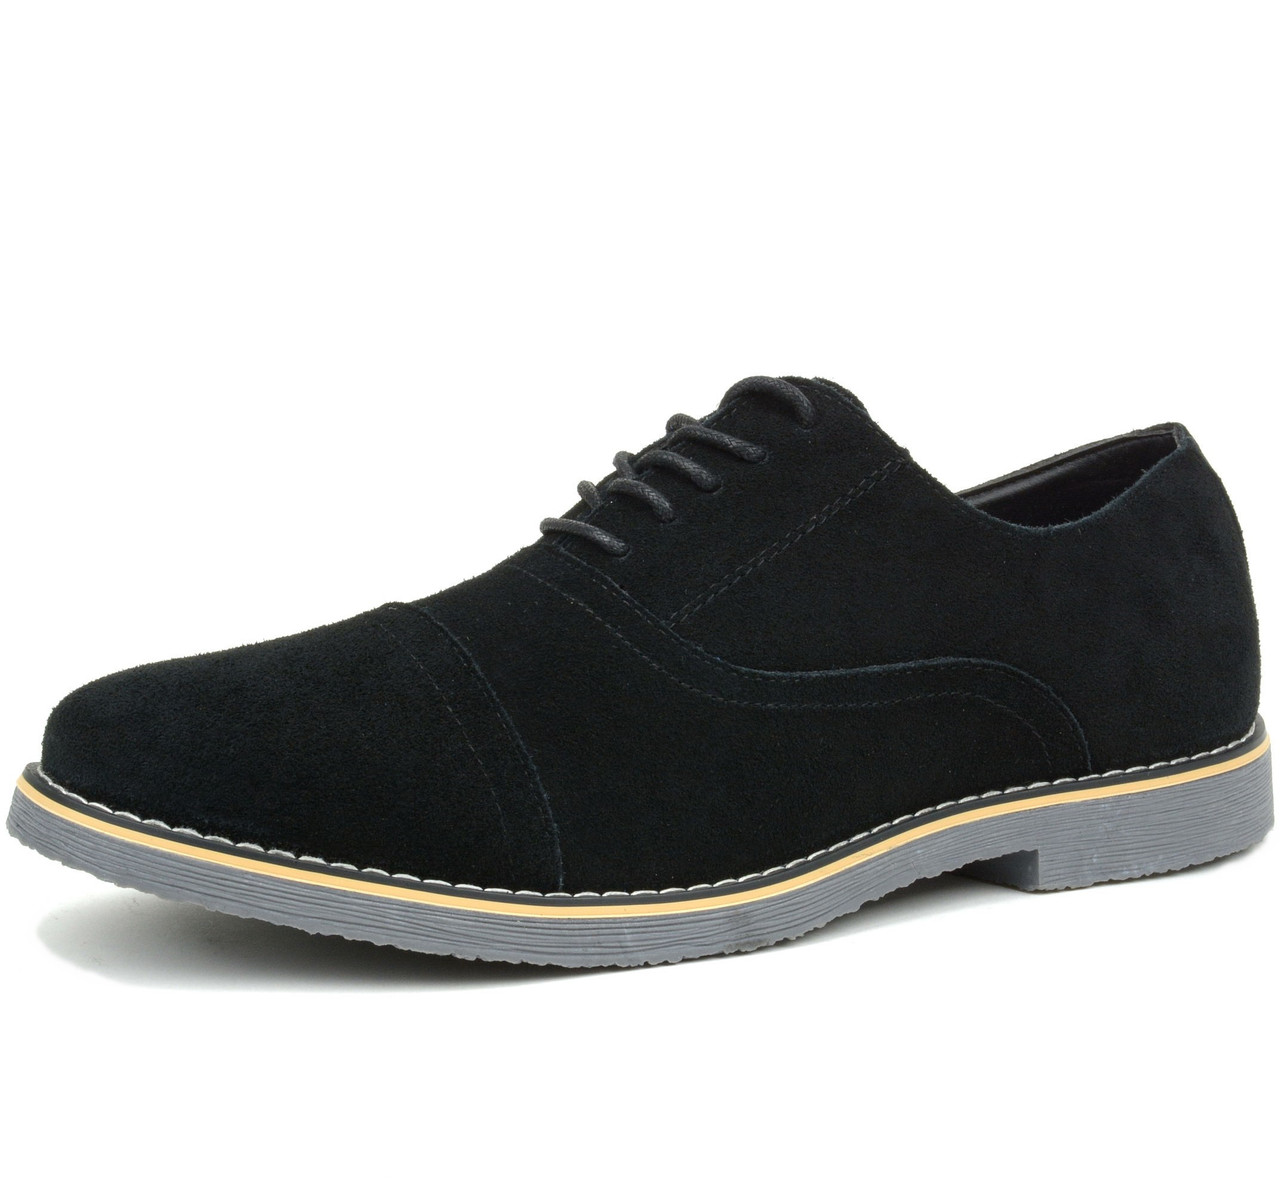 Suede /& Genuine Formal Leather Dress Shoes Mens Oxfords Casual Leather Boots